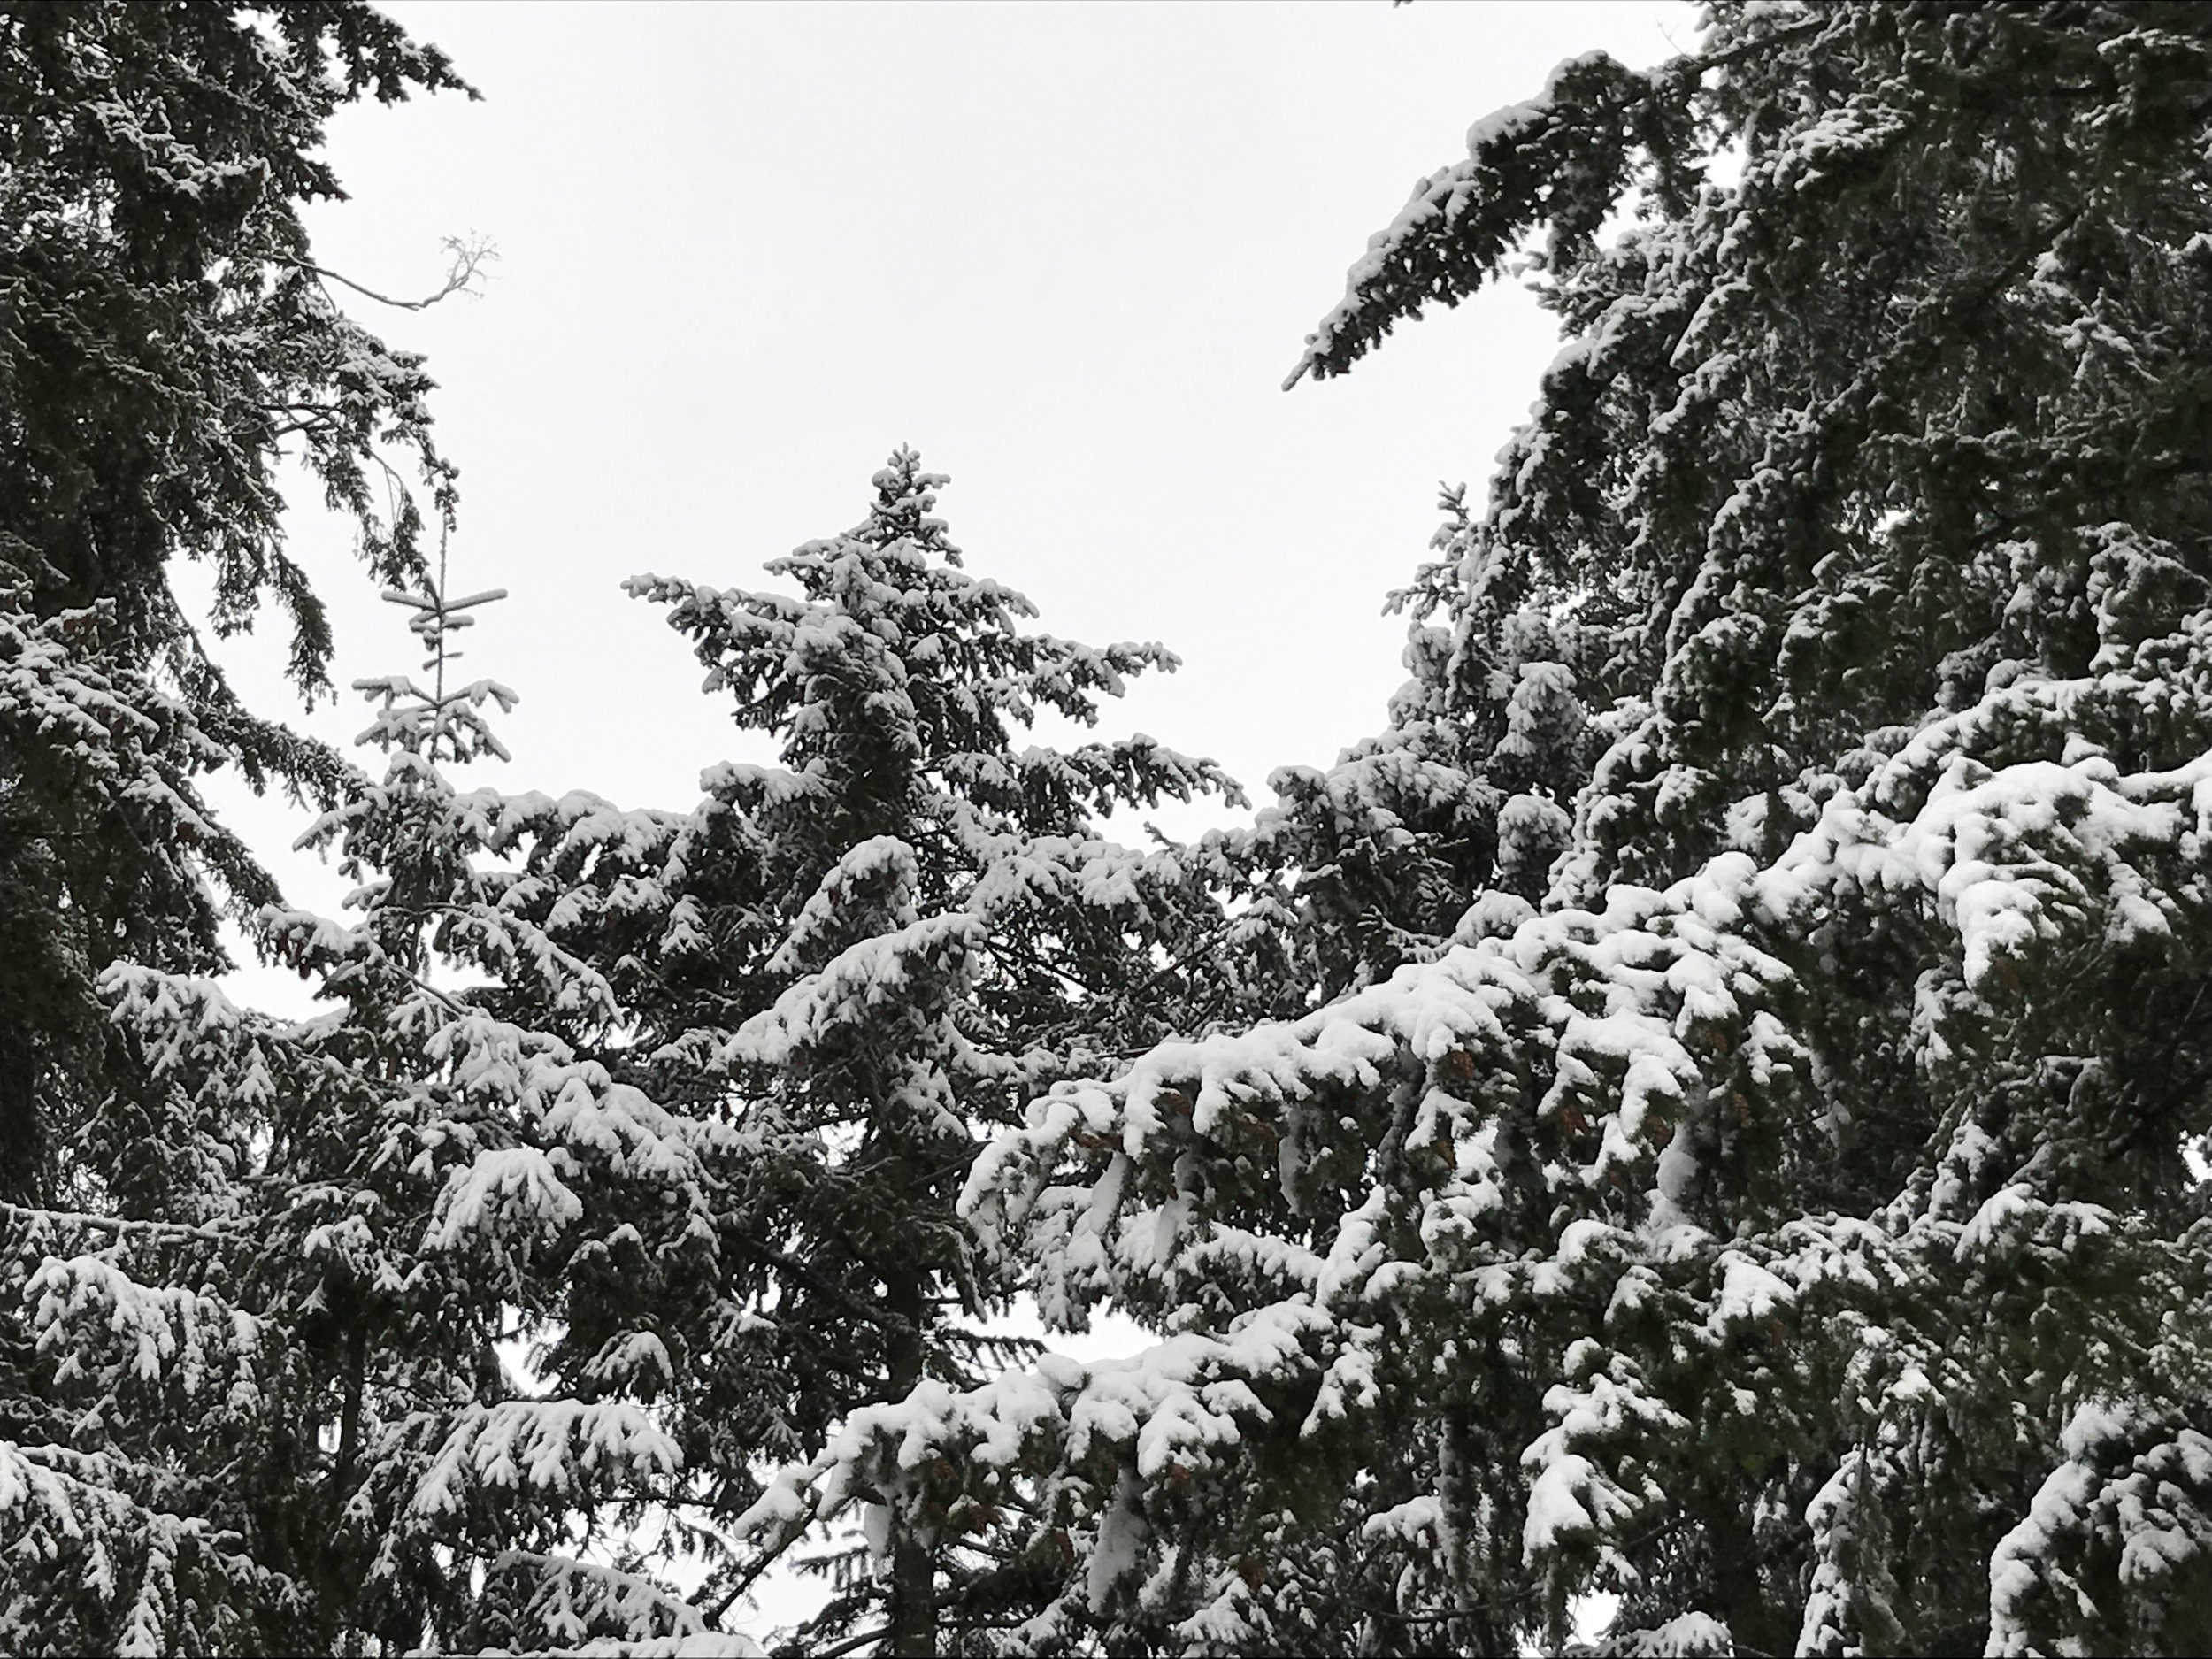 Nature's flocking, real snow, covered the trees for the holidays.